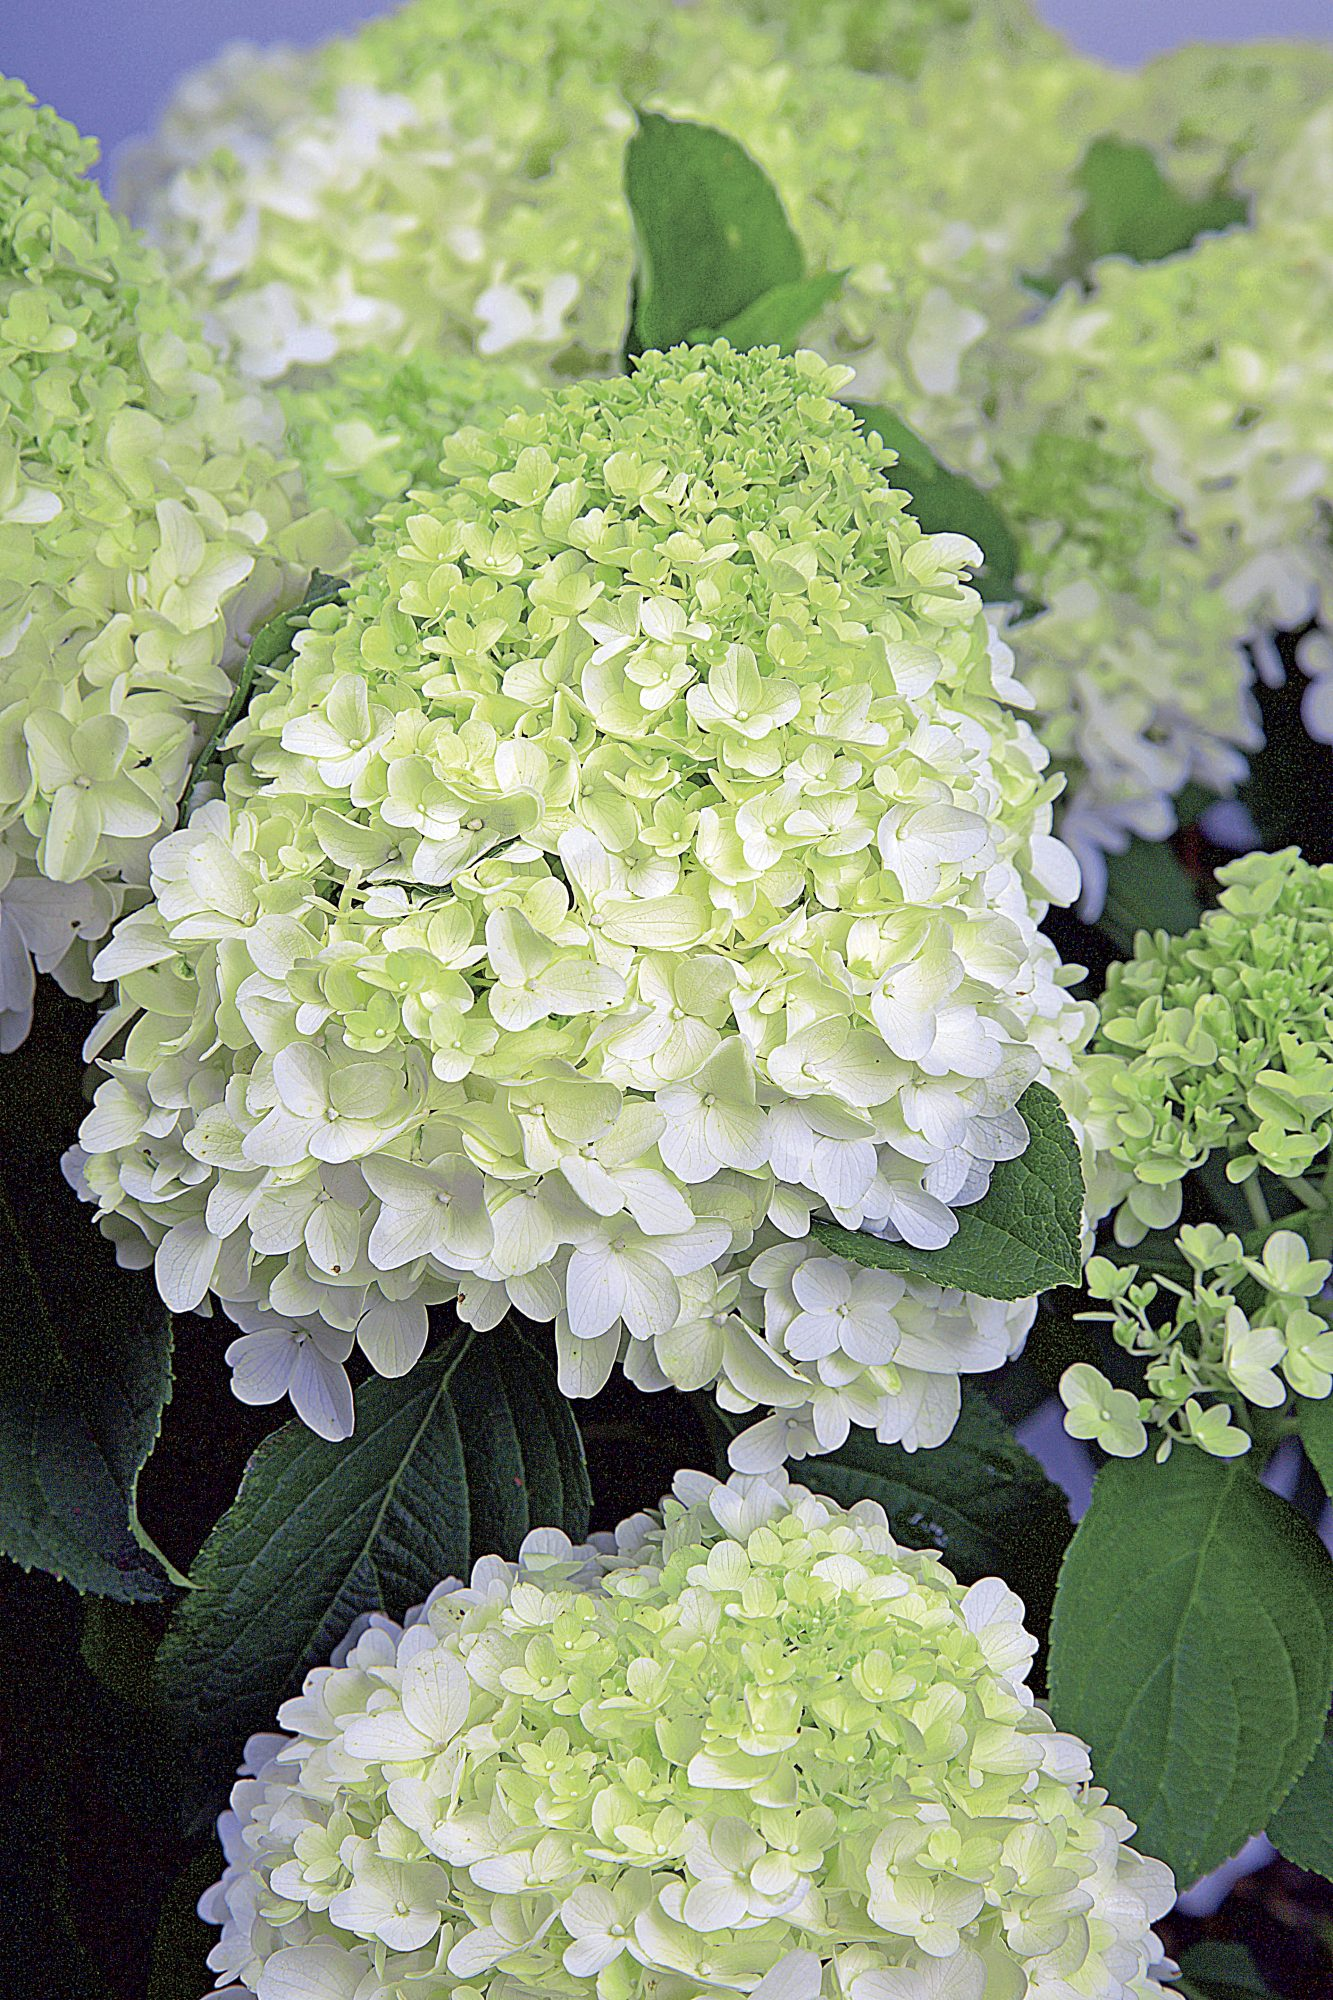 White Wedding Hydrangea from the SL Plant Collection